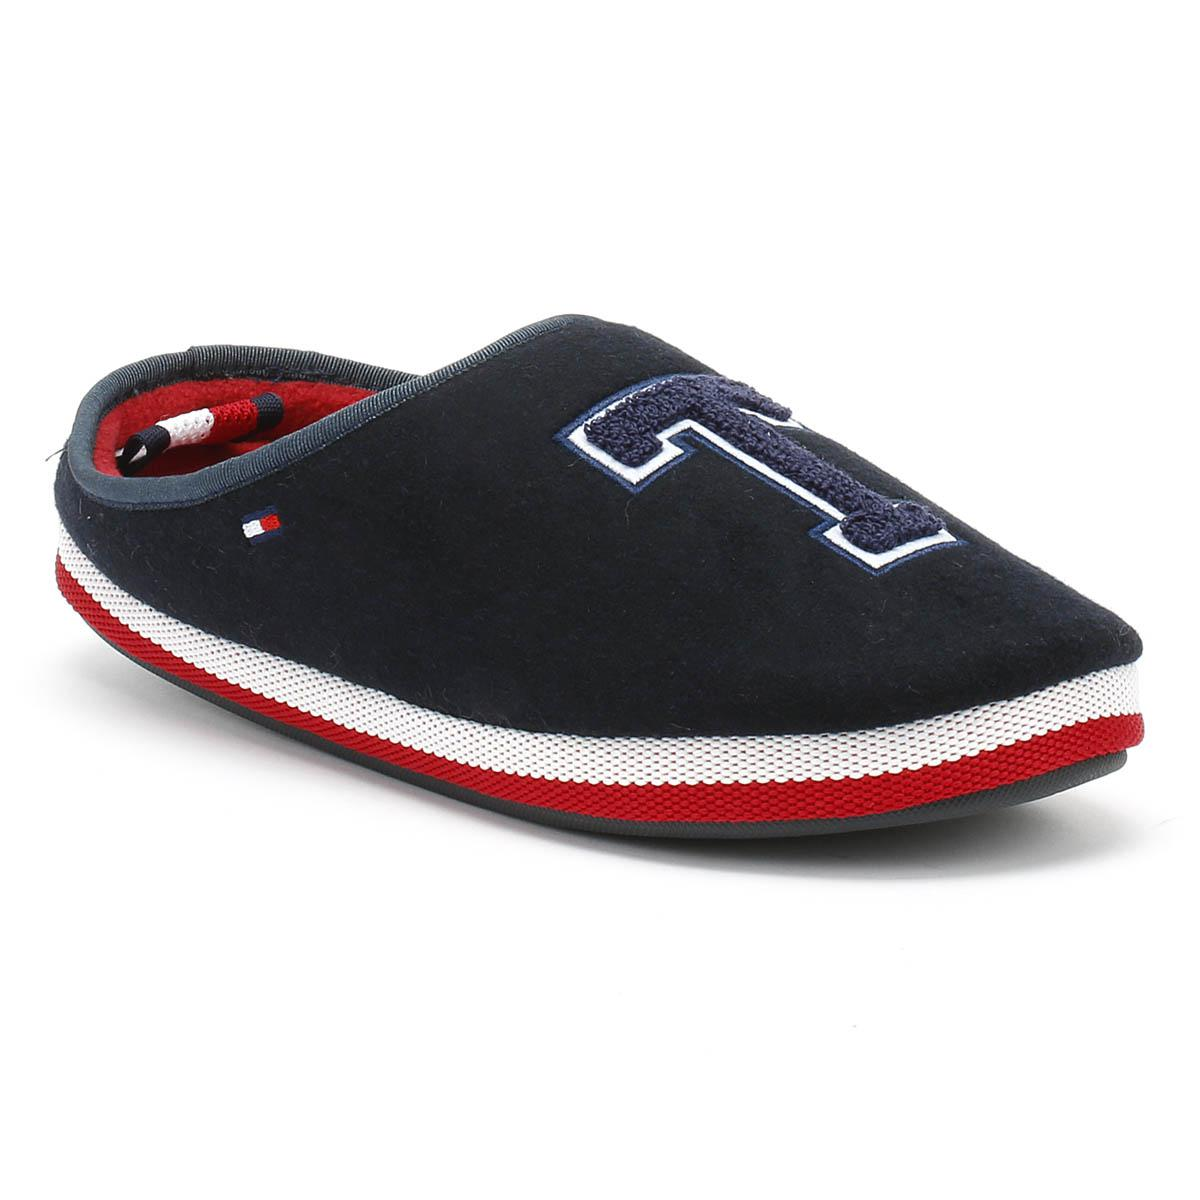 e7a847f2e34e54 ... Tommy Hilfiger. Blue Badge Mens Midnight Home Slippers best deals on  a5f8a 8a9fc ...